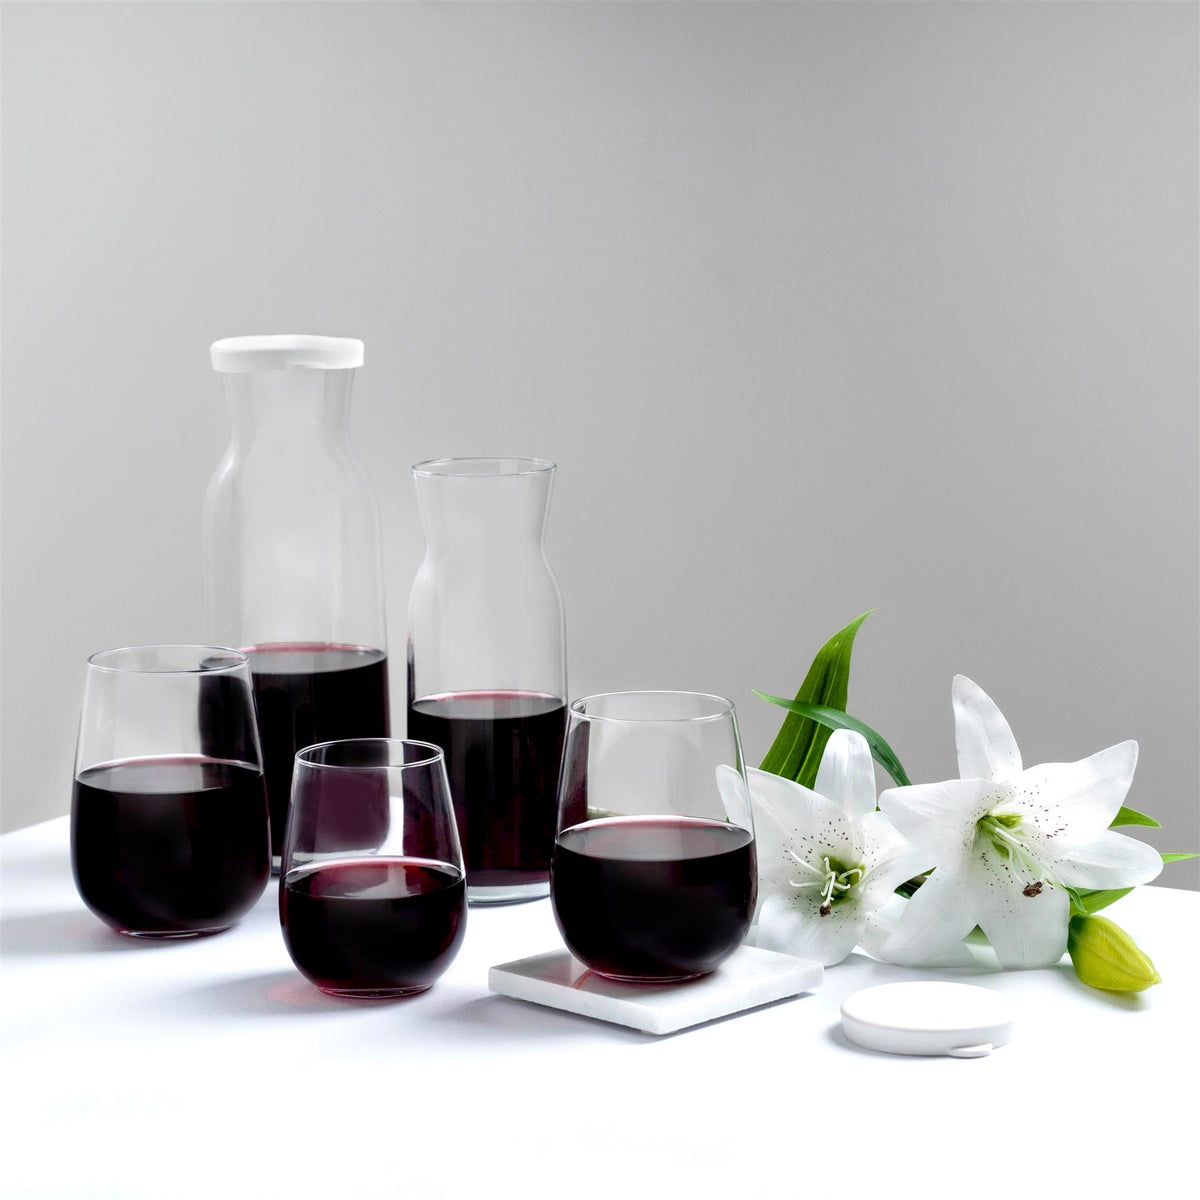 Argon Tableware 6pc Corto Stemless Wine Glasses Set 475ml Dining Table Glassware Collection